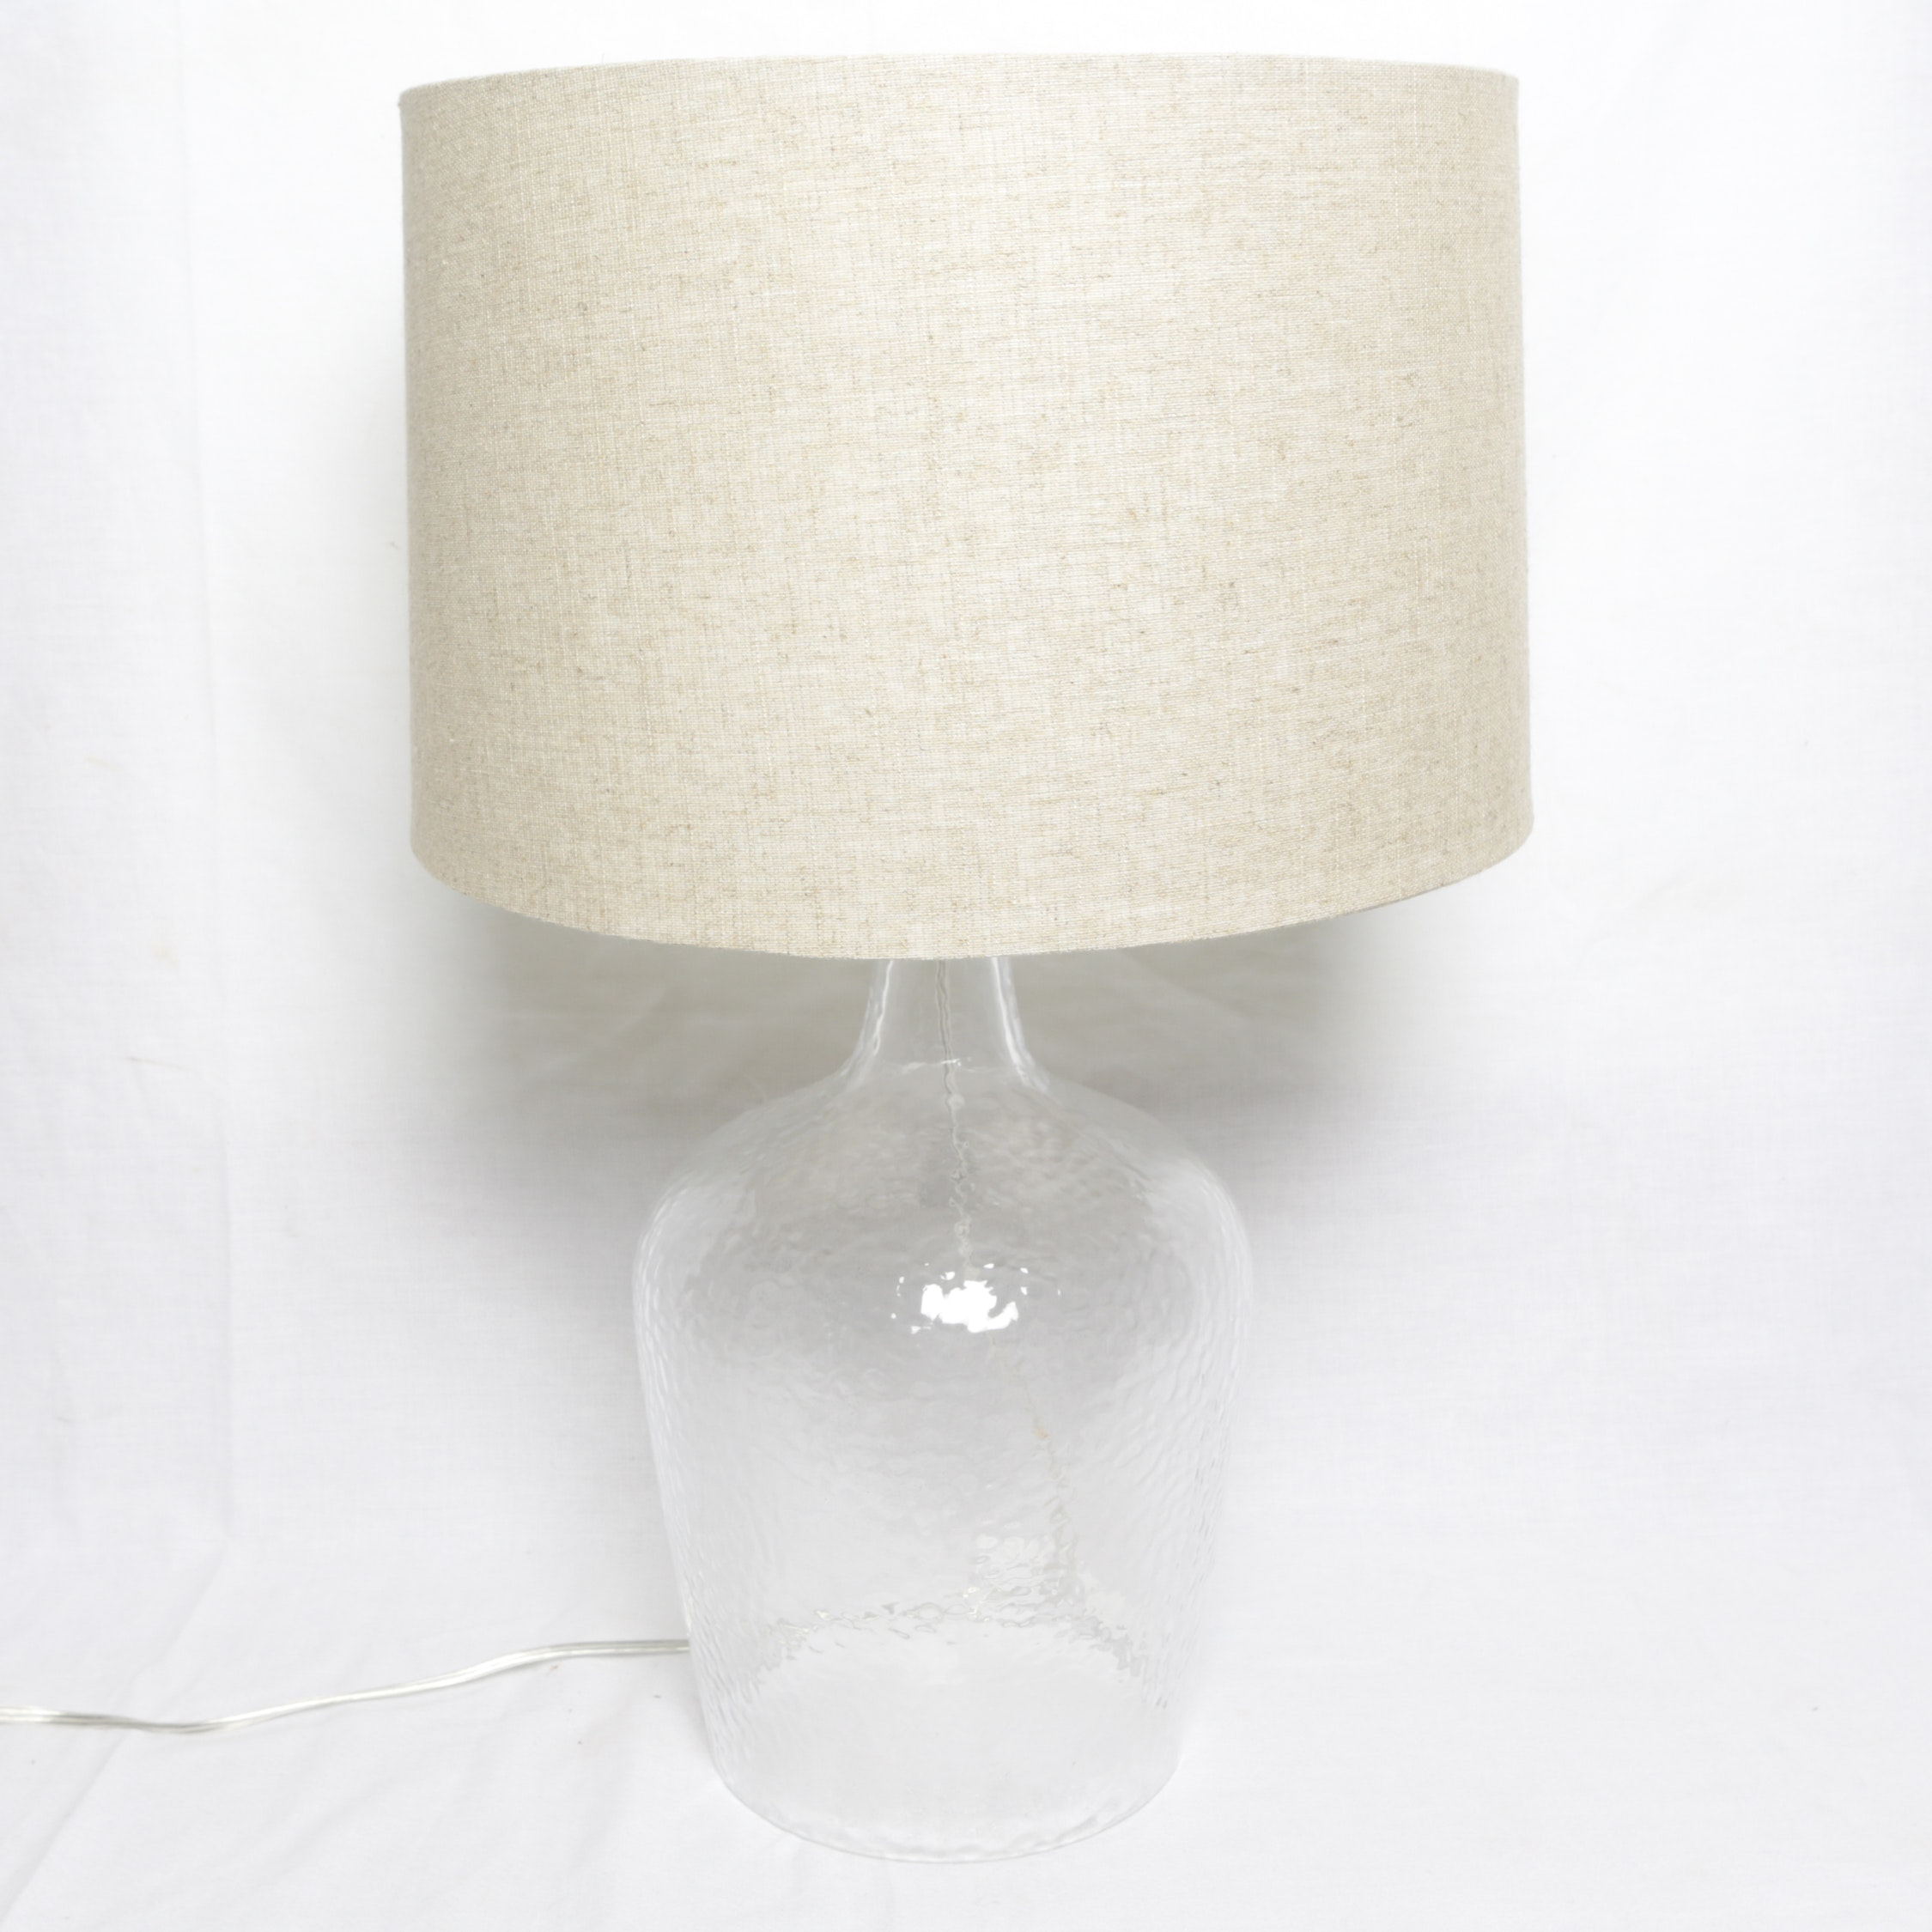 Clear Textured Glass Table Lamp with Tan Fabric Covered Drum Shade